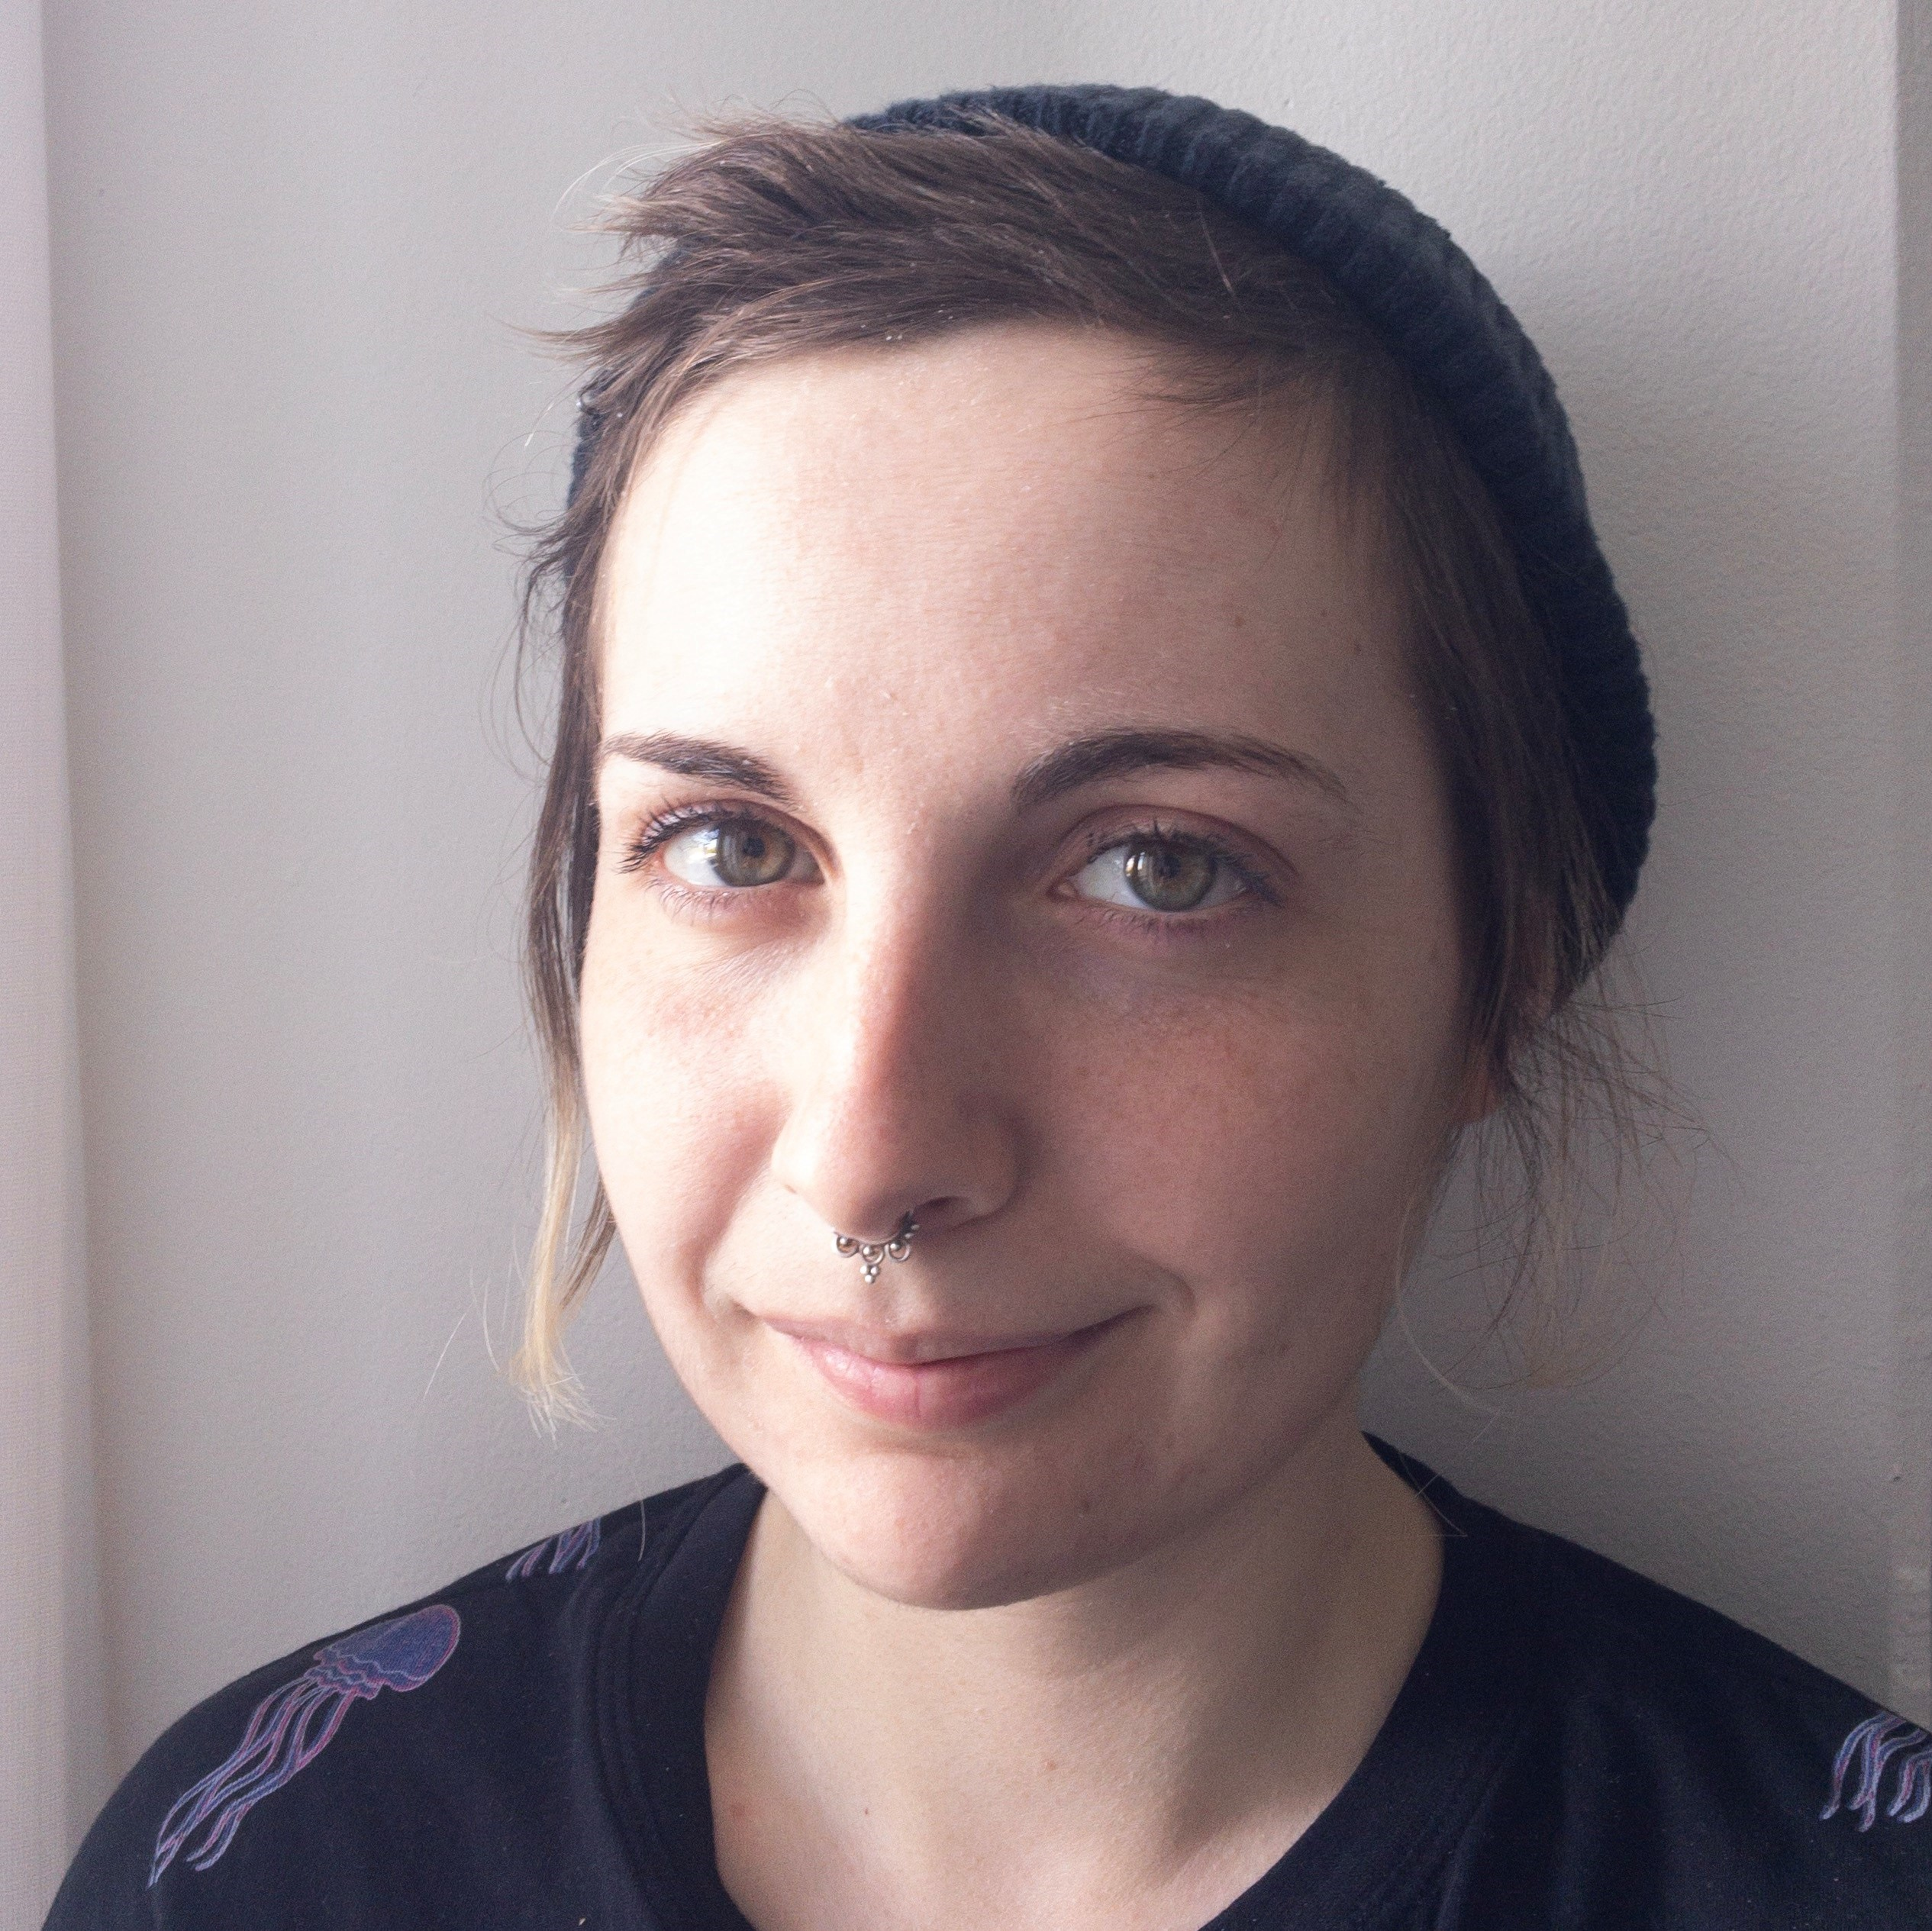 Read more about: Antonina Atanasova Karakastova - new PhD student